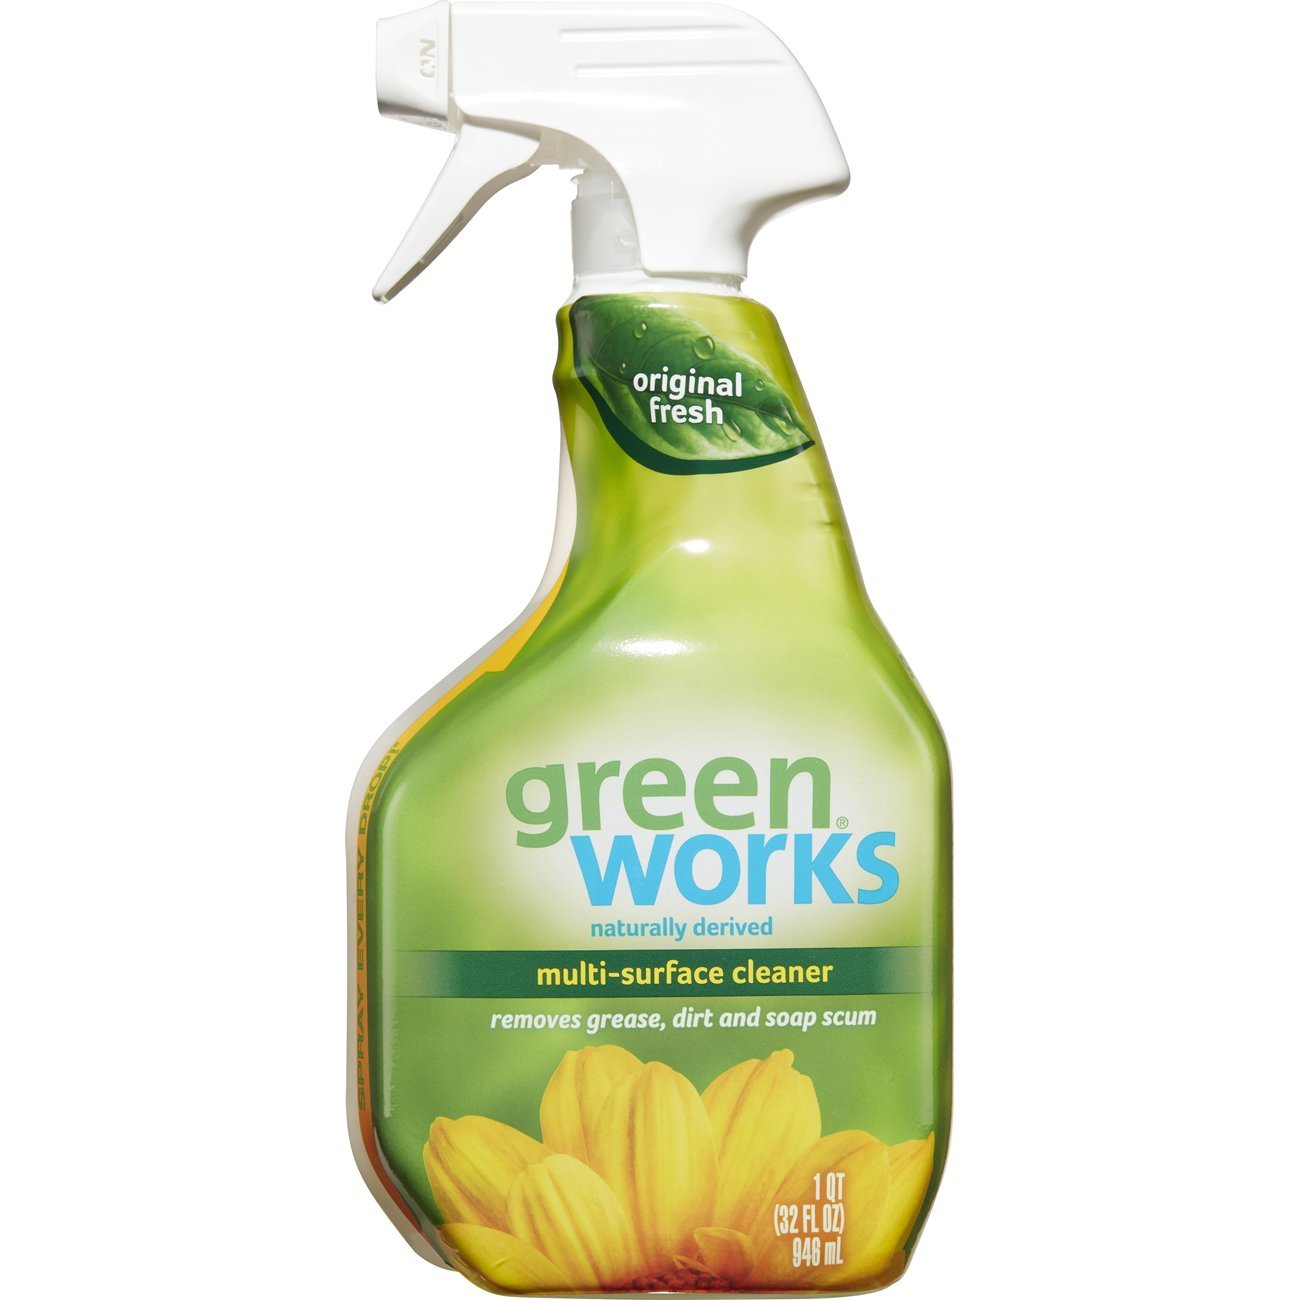 Green Works Multi-Surface Cleaner, Cleaning Spray - Original Fresh, 32 Ounces (Pack of 3)